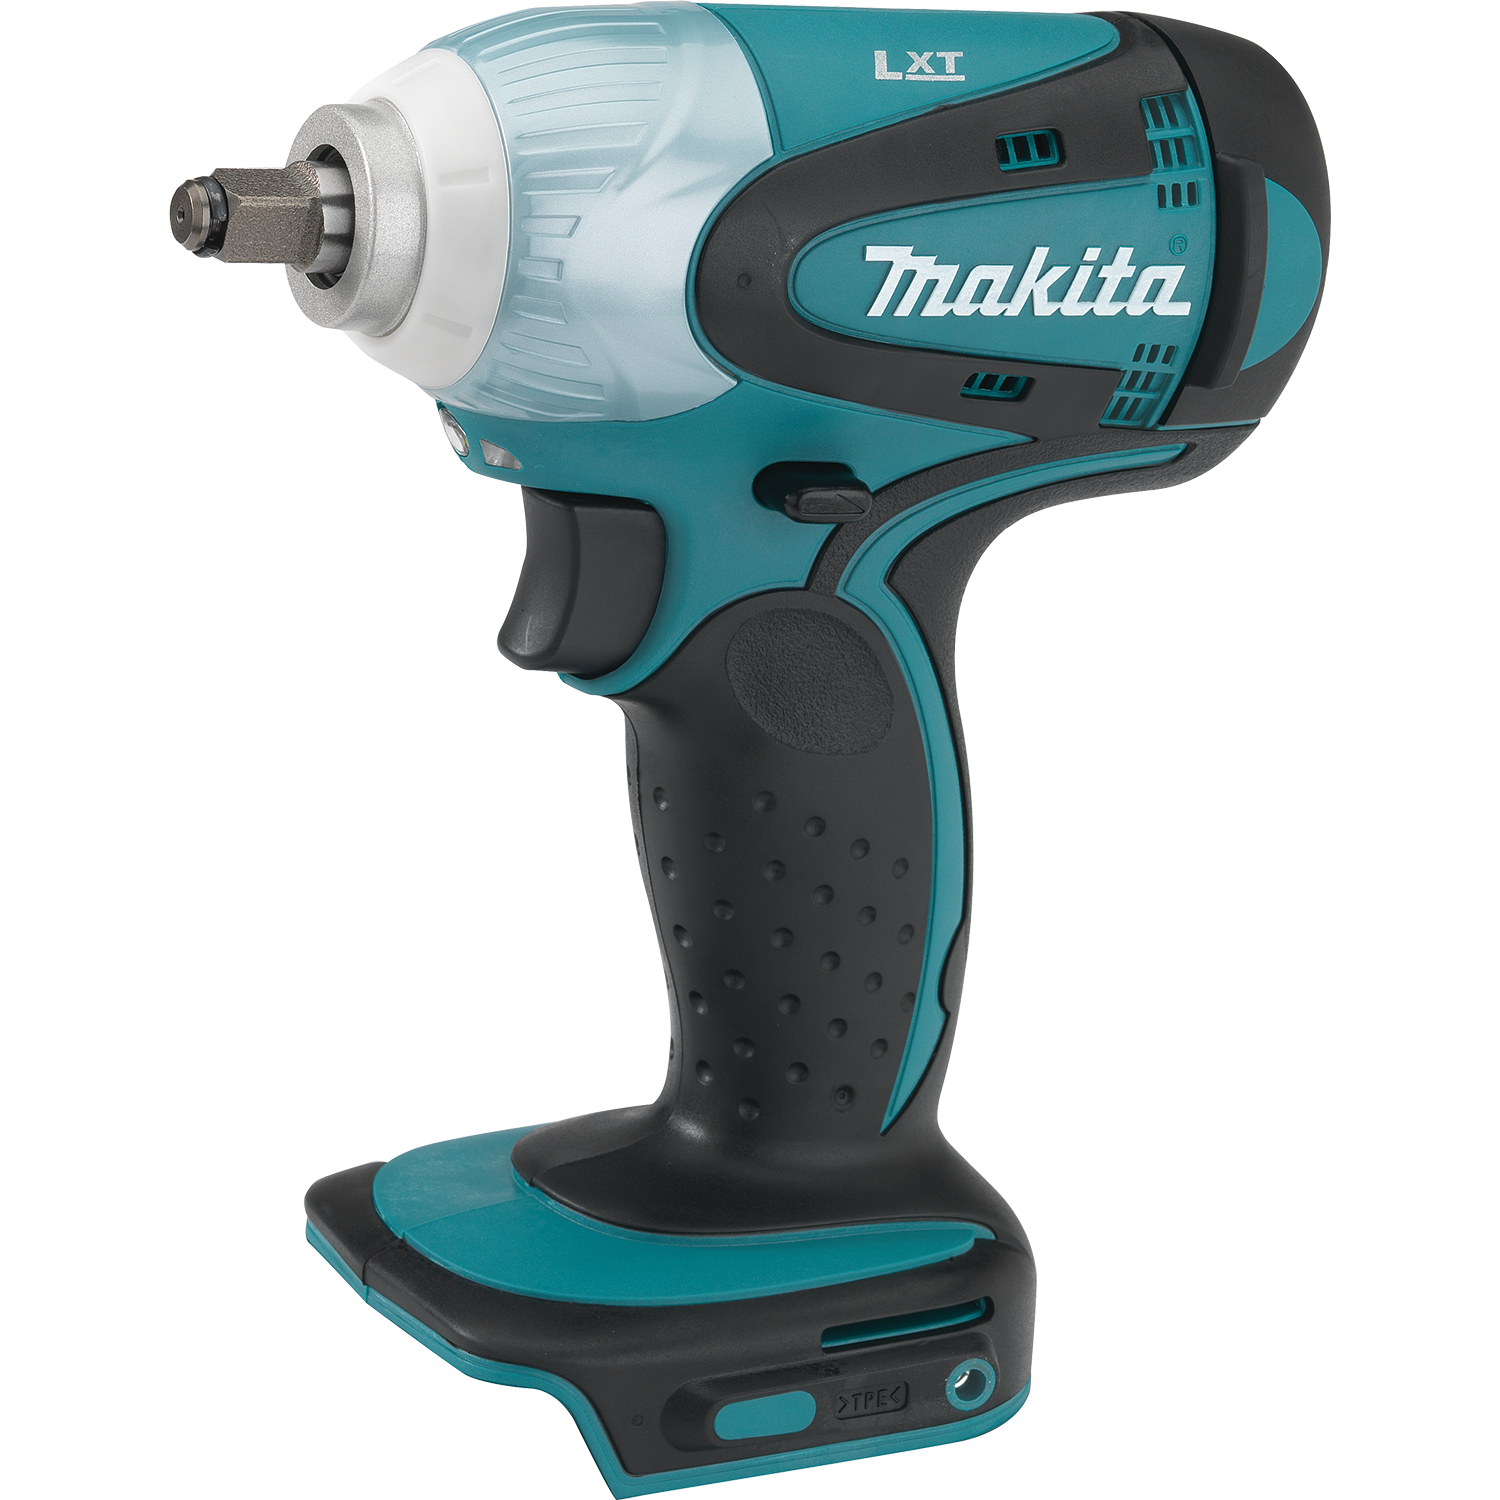 Power Wrench Png - Makita USA - Product Details -XWT06Z